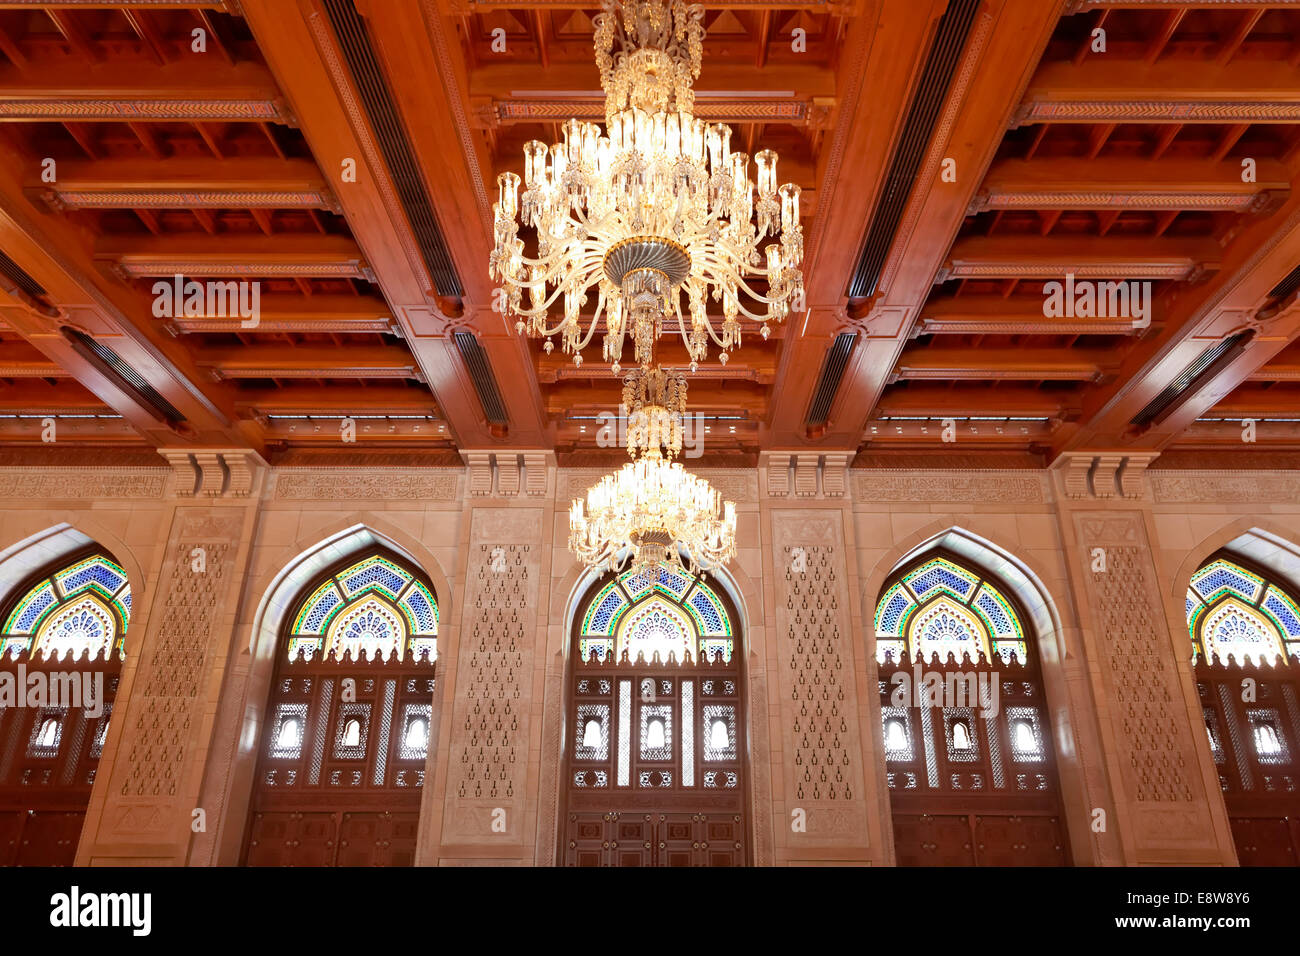 Prayer room for women with a wooden ceiling and a chandelier, Sultan Qaboos Grand Mosque, Muscat, Oman - Stock Image